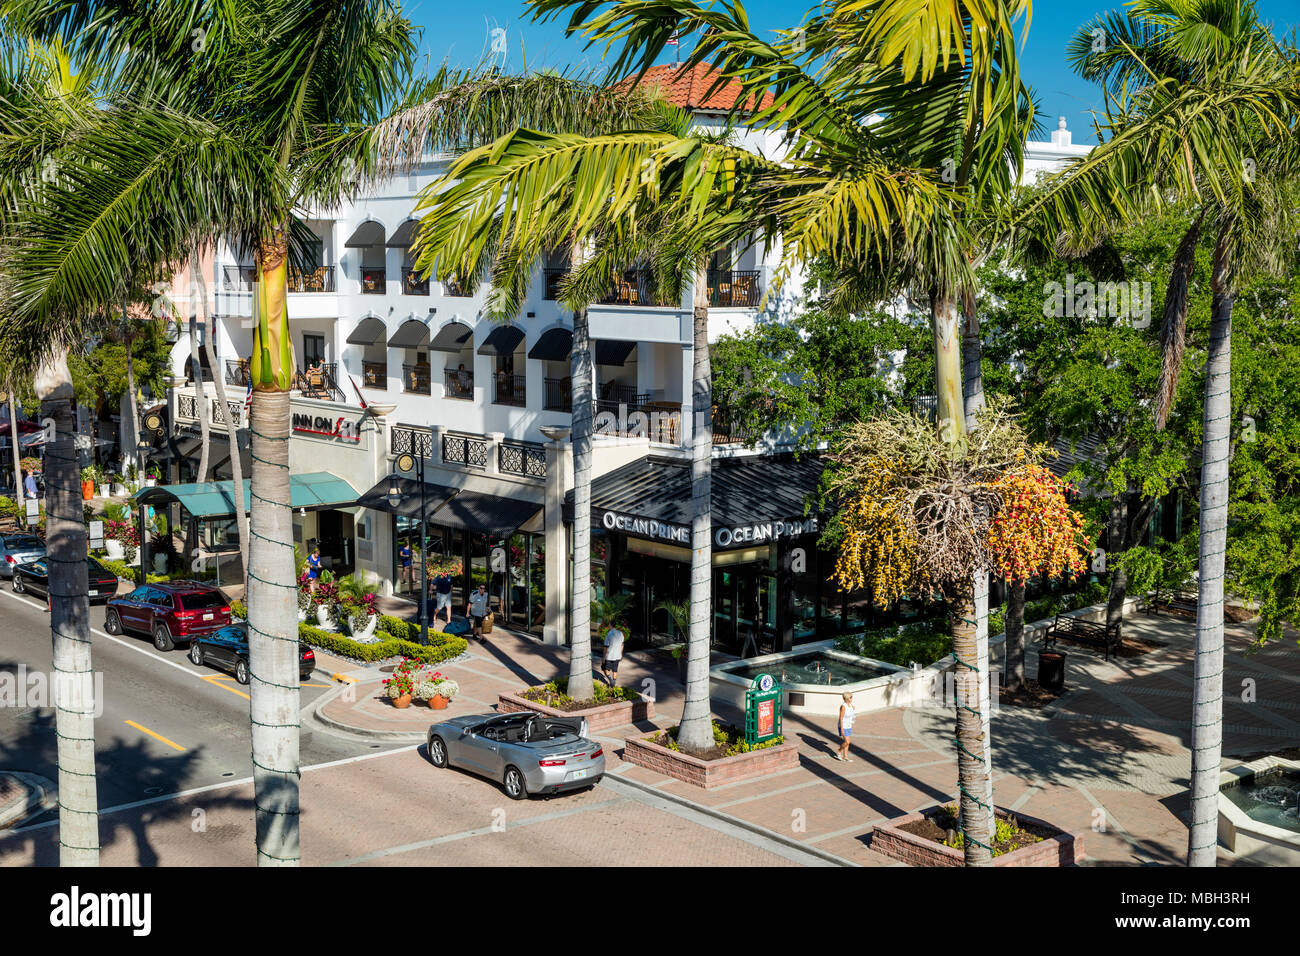 Inn on 5th Hotel and retail businesses along 5th Avenue, Naples, Florida, USA - Stock Image